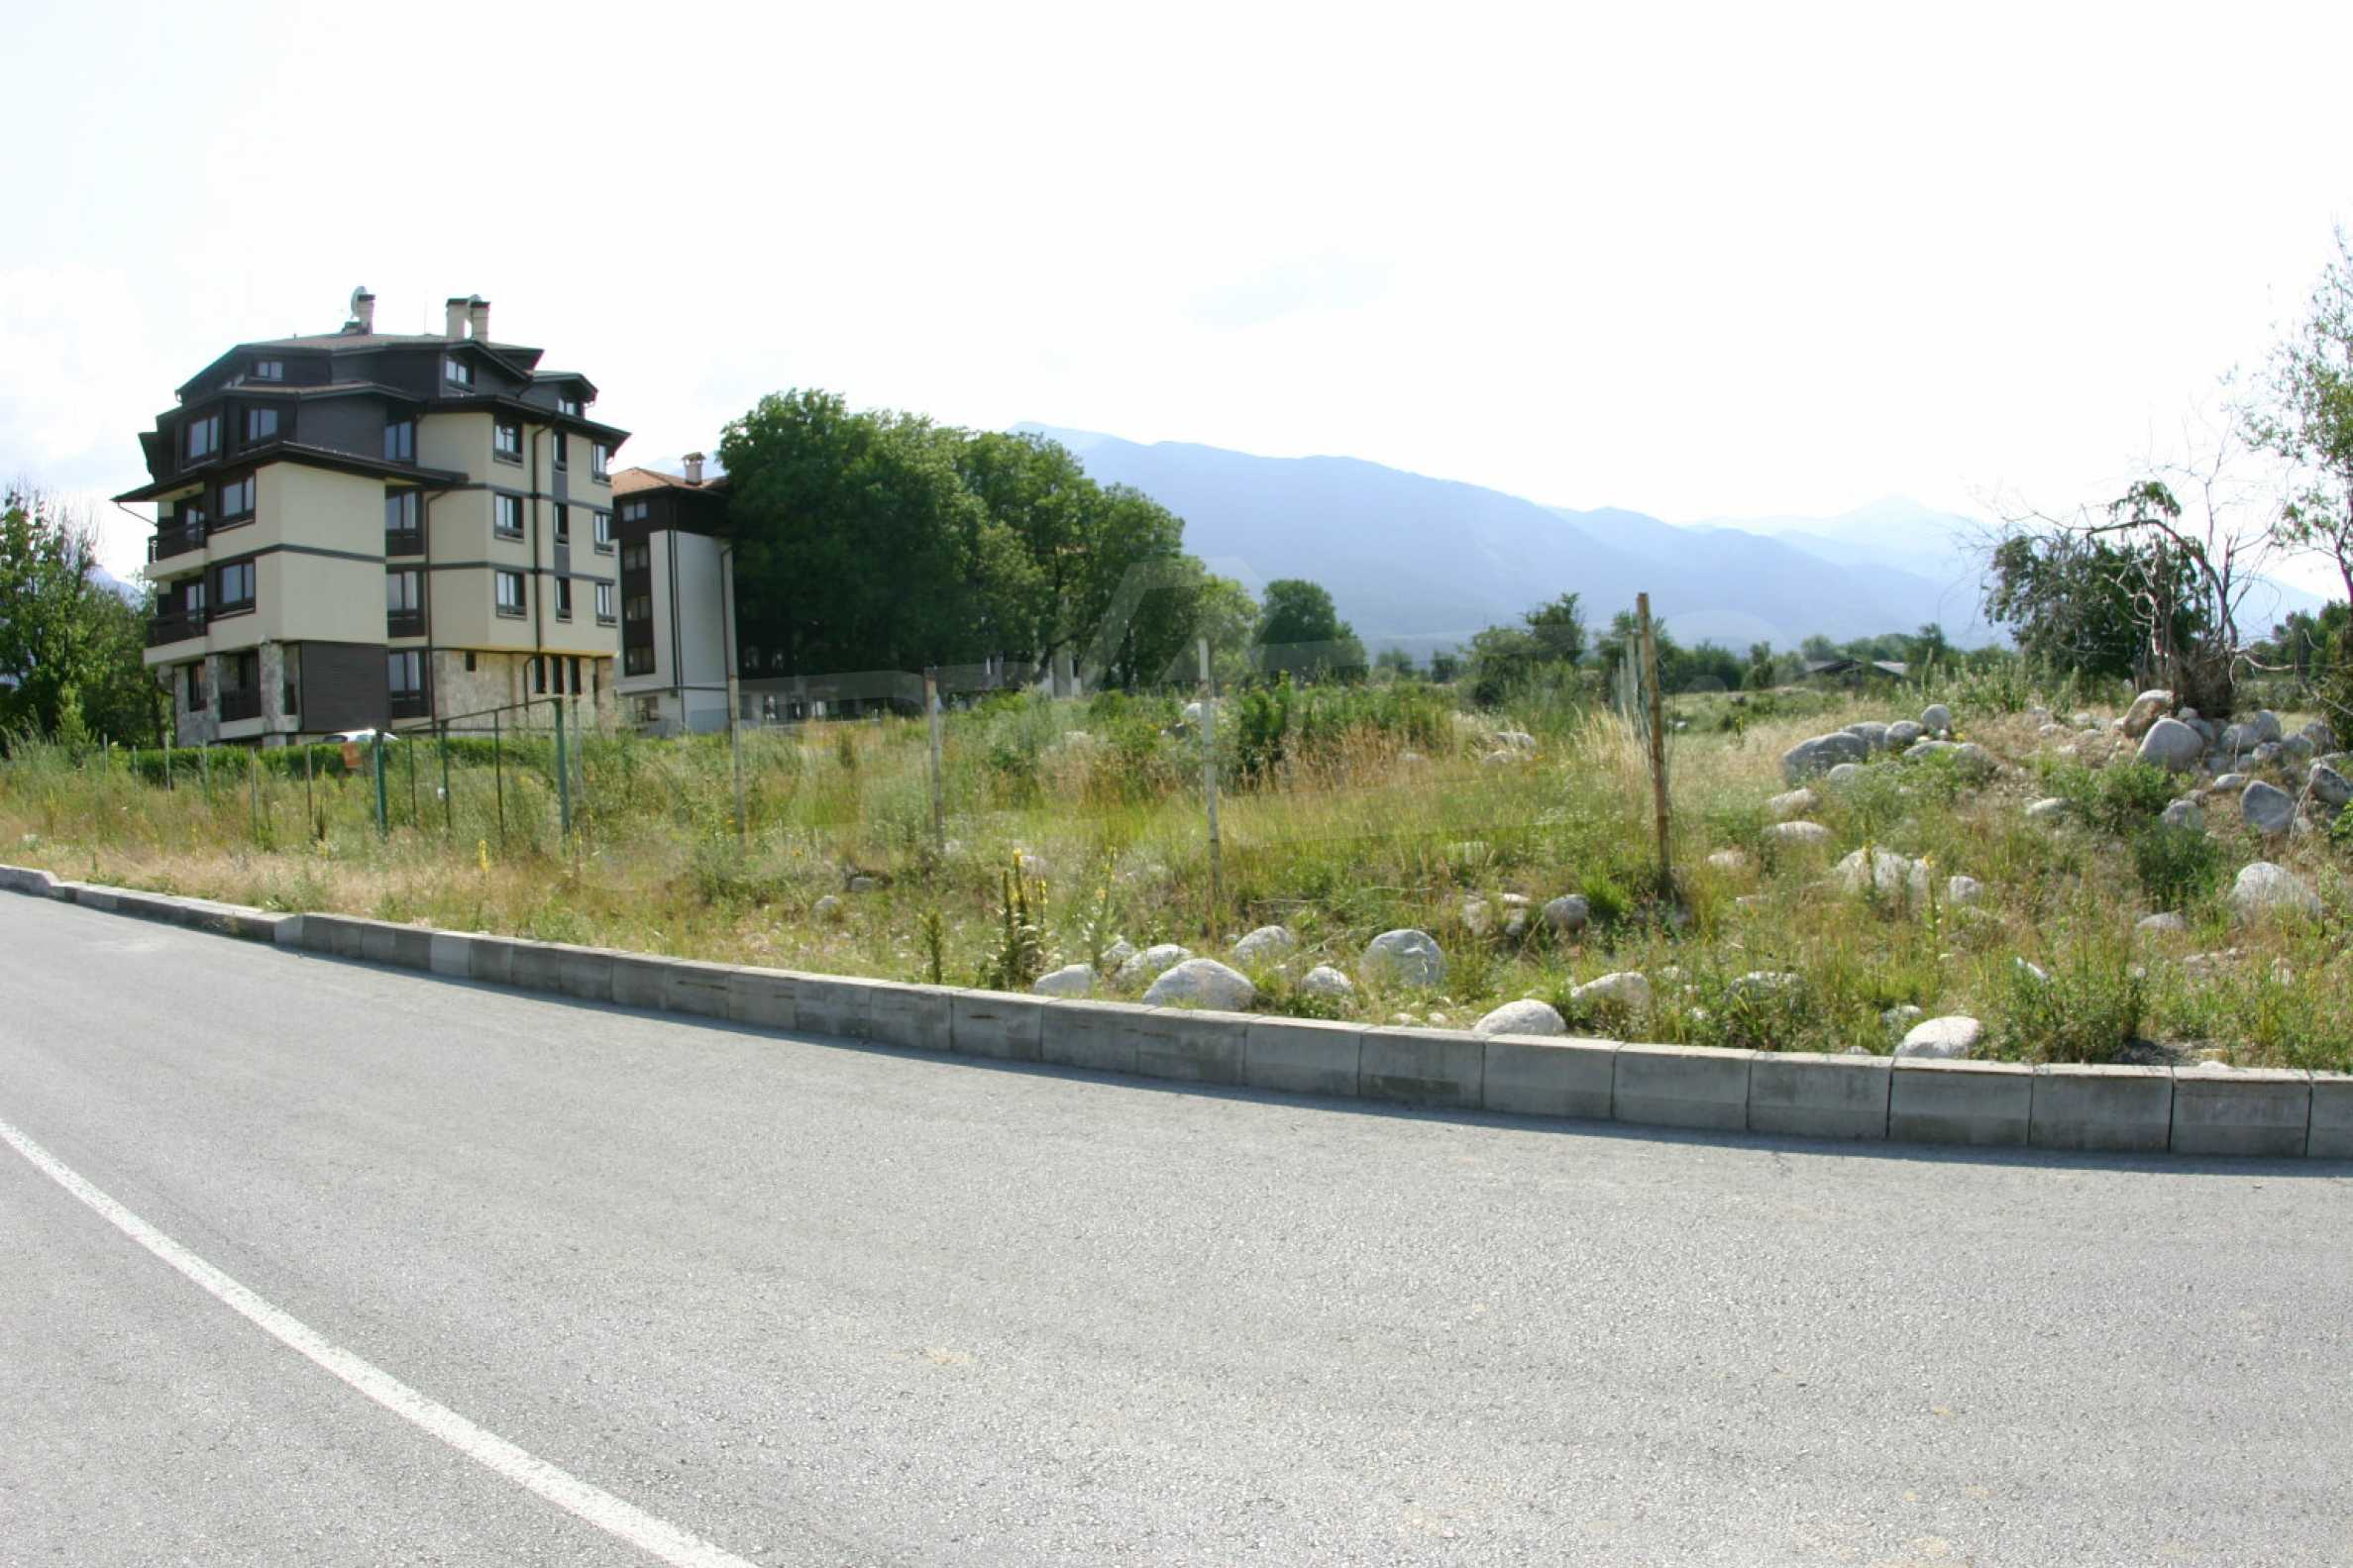 Agricultural land at the ring road in Bansko 4